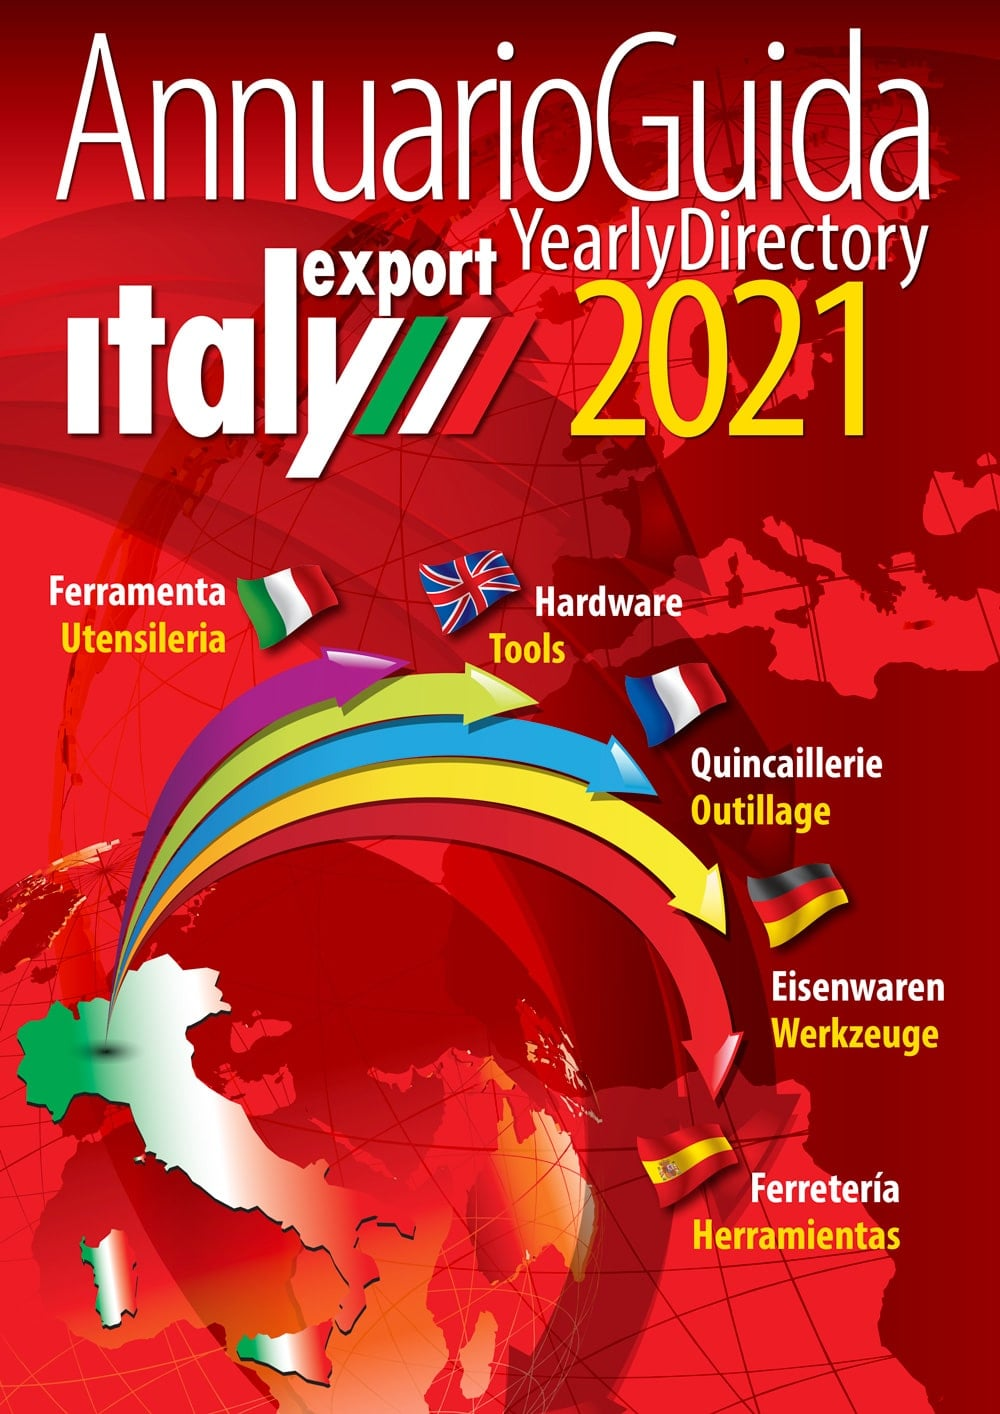 Yearly Directory 2021, Italy Export